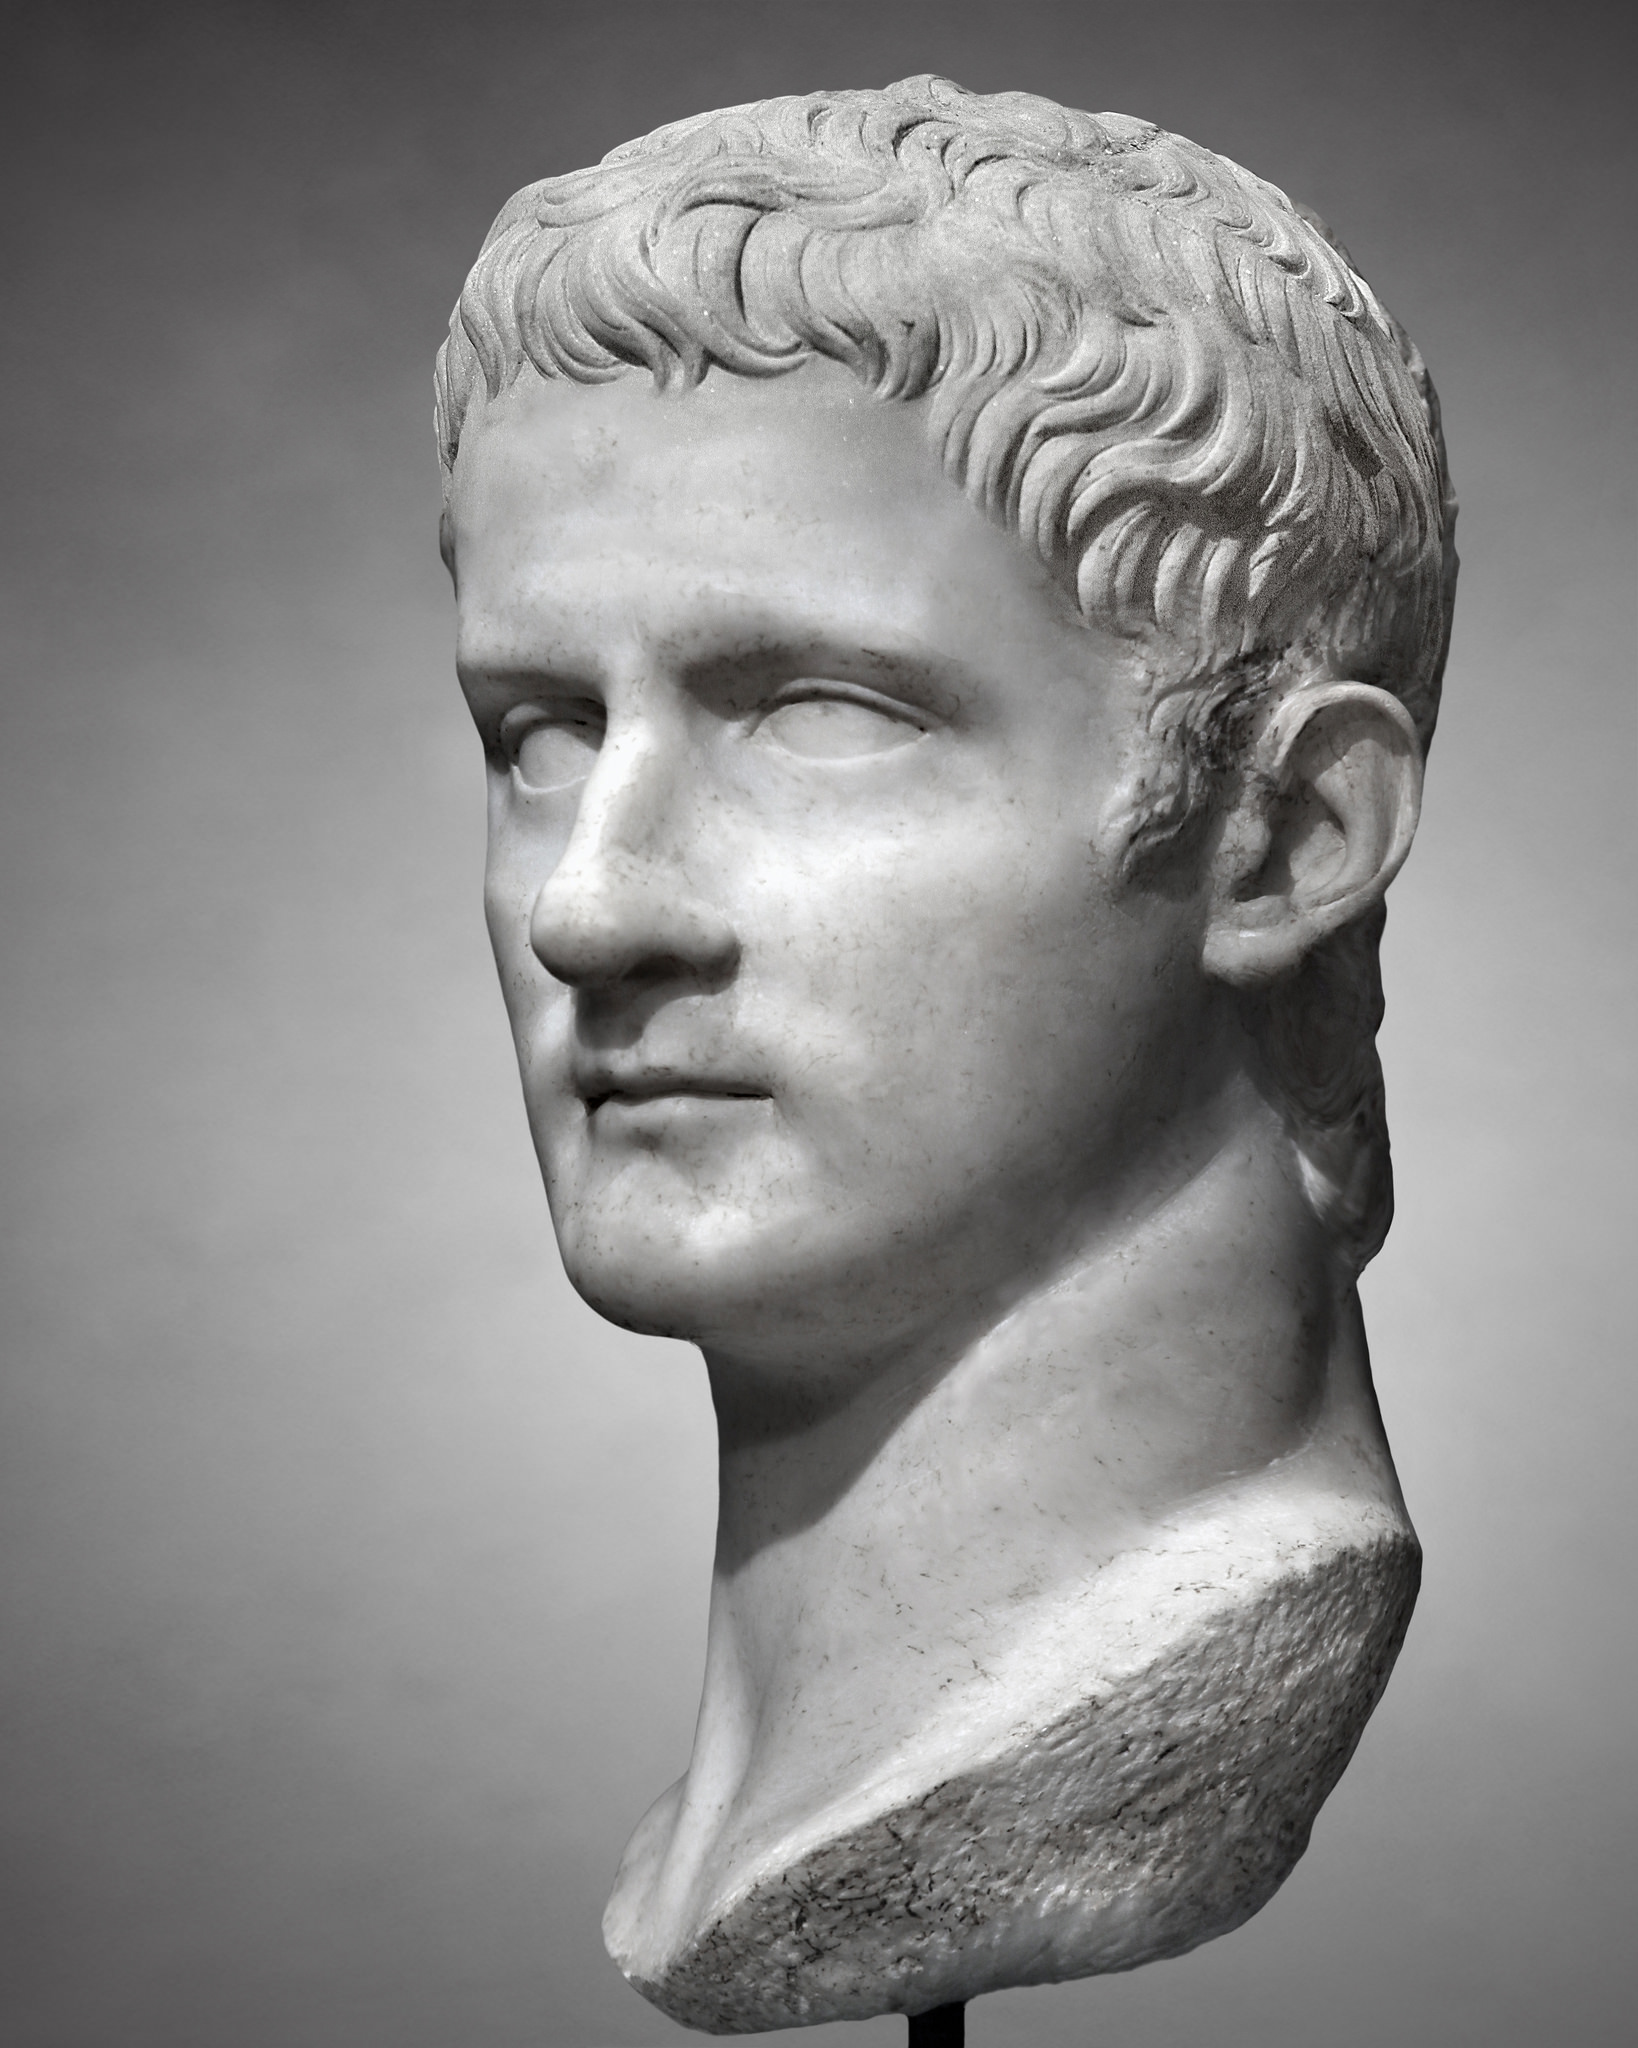 Mean Caligula | Portraits, Roman and Ancient history